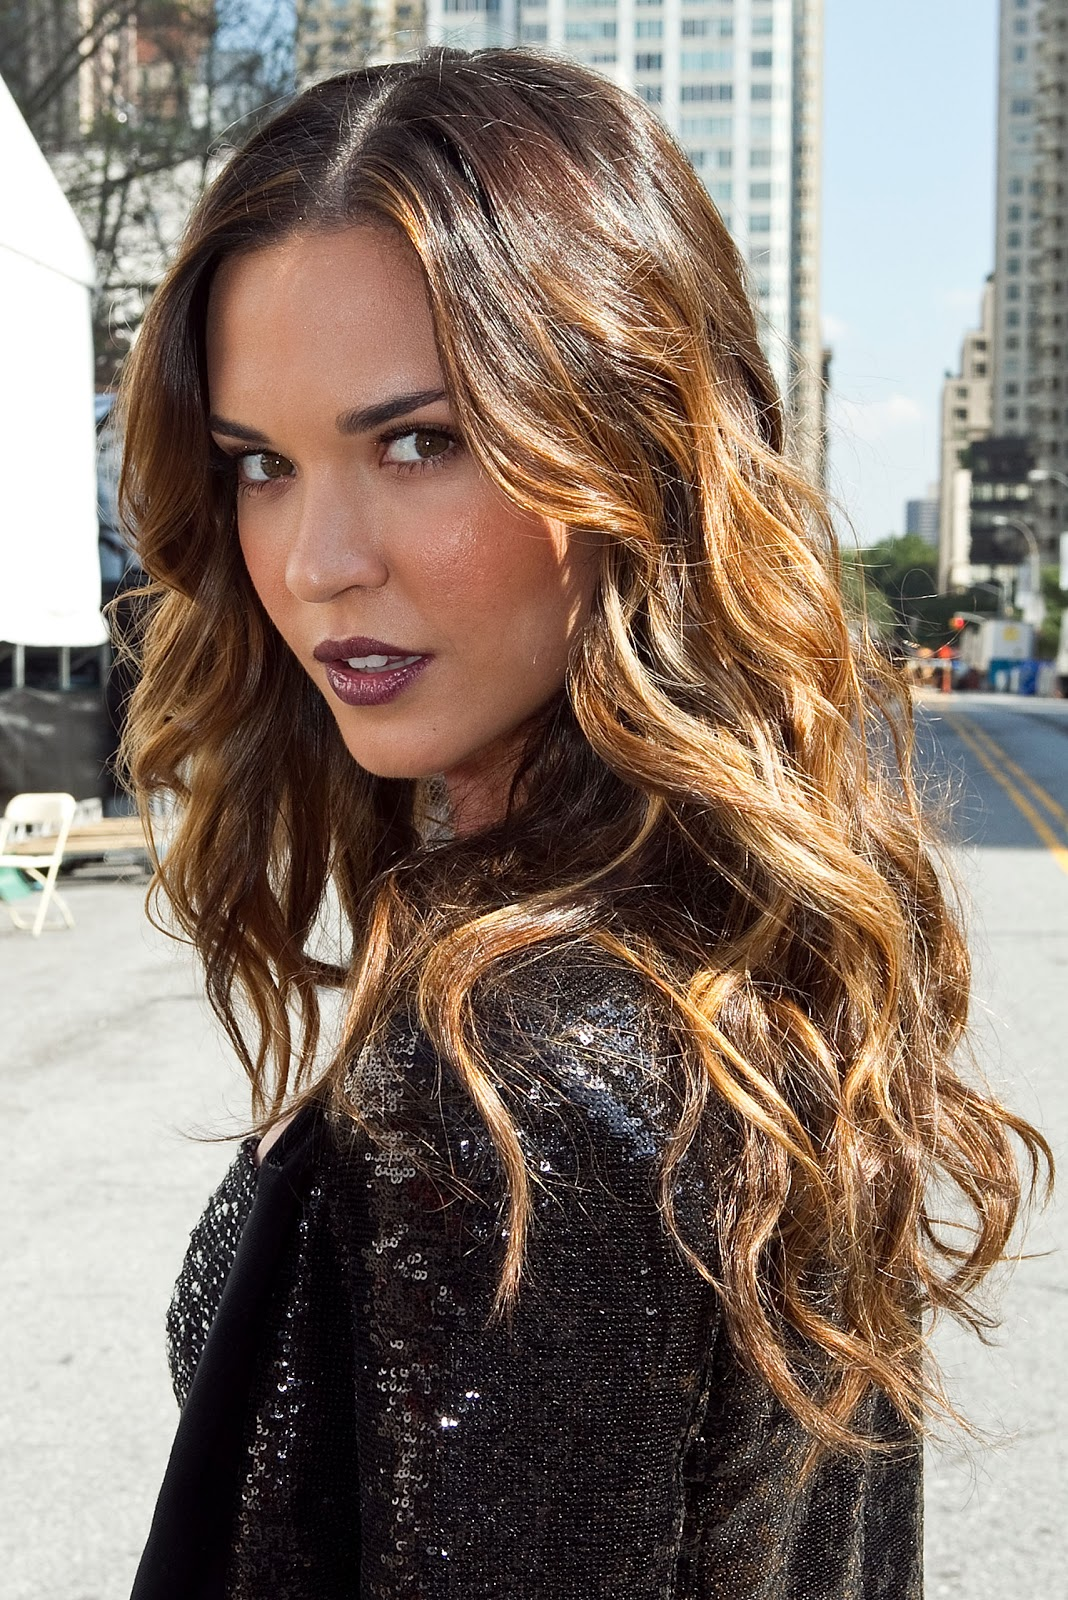 Download this Odette Annable Photo picture